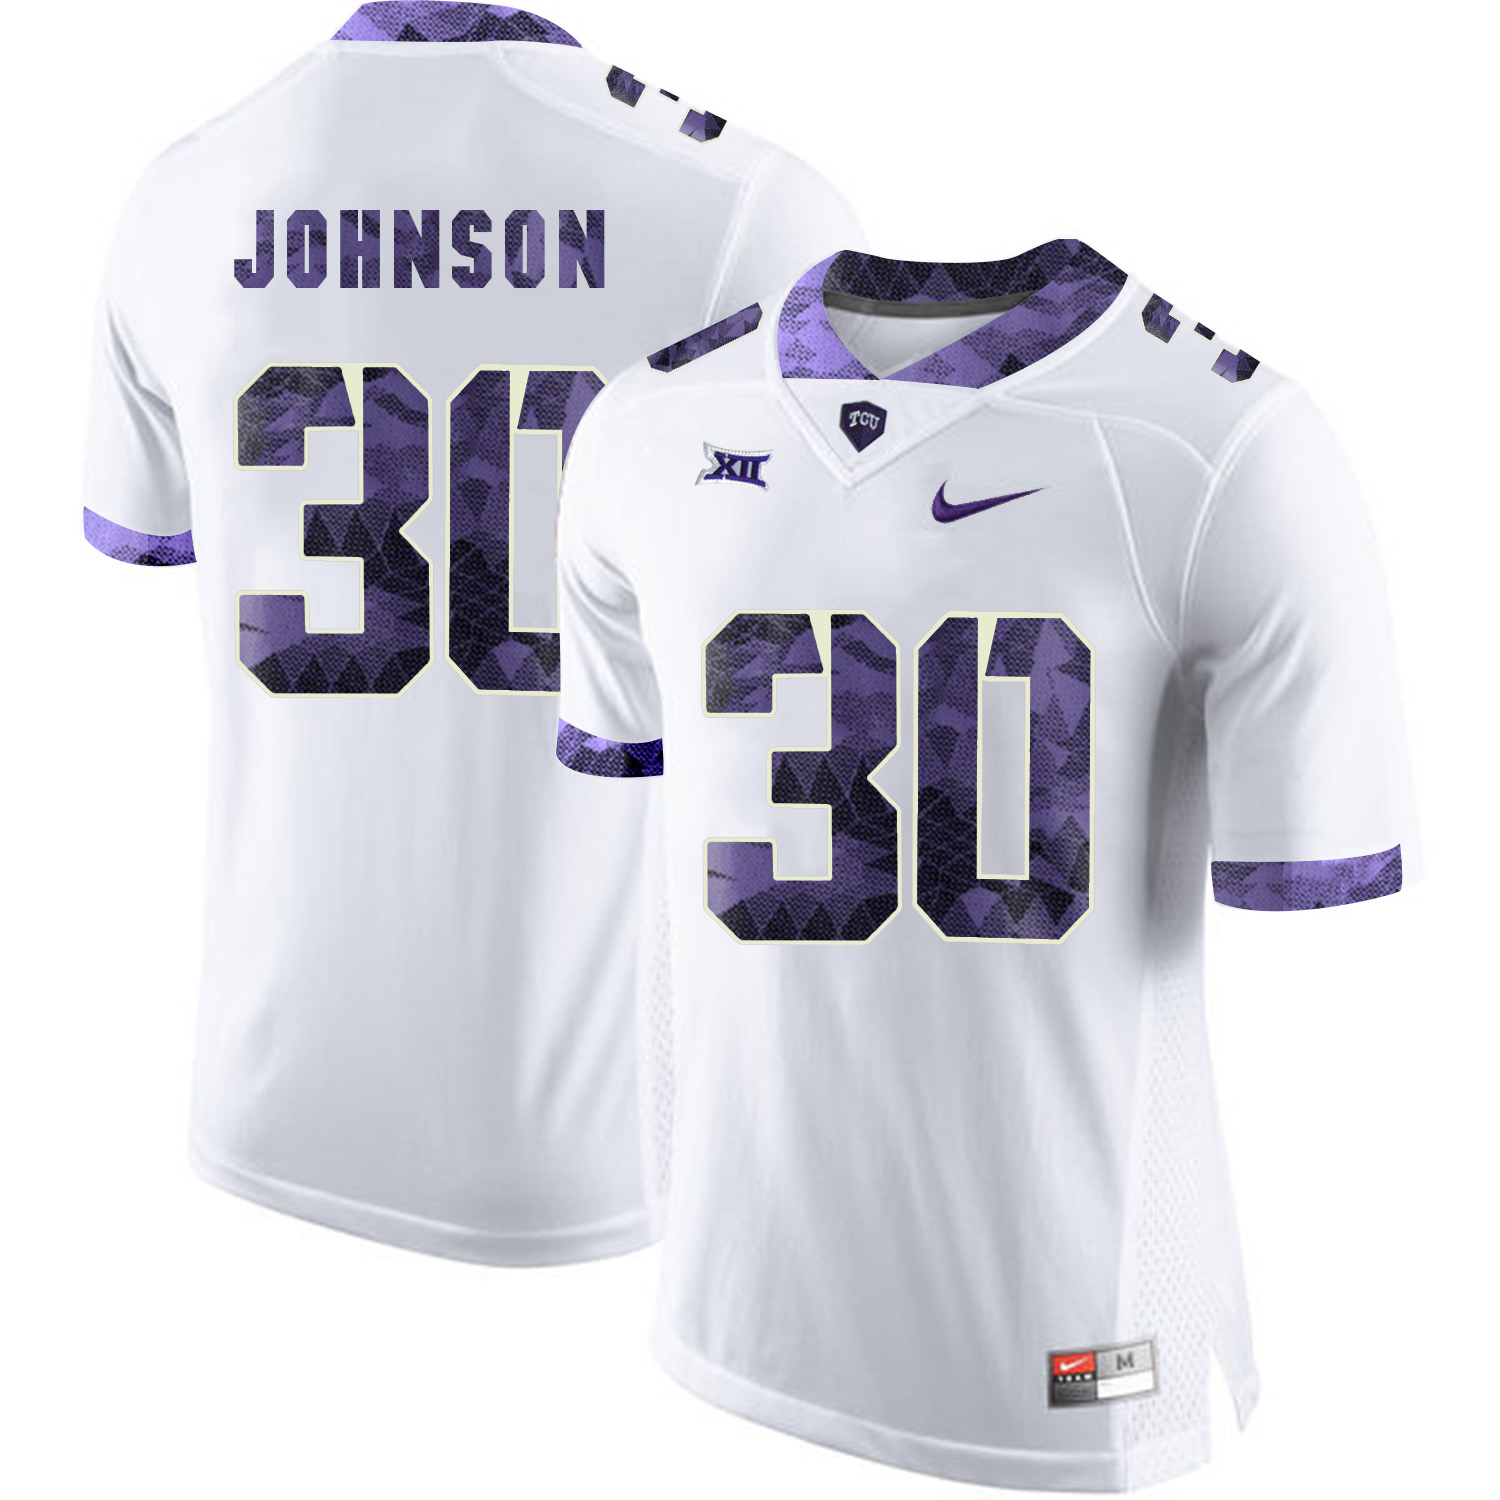 TCU Horned Frogs 30 Denzel Johnson White Print College Football Limited Jersey